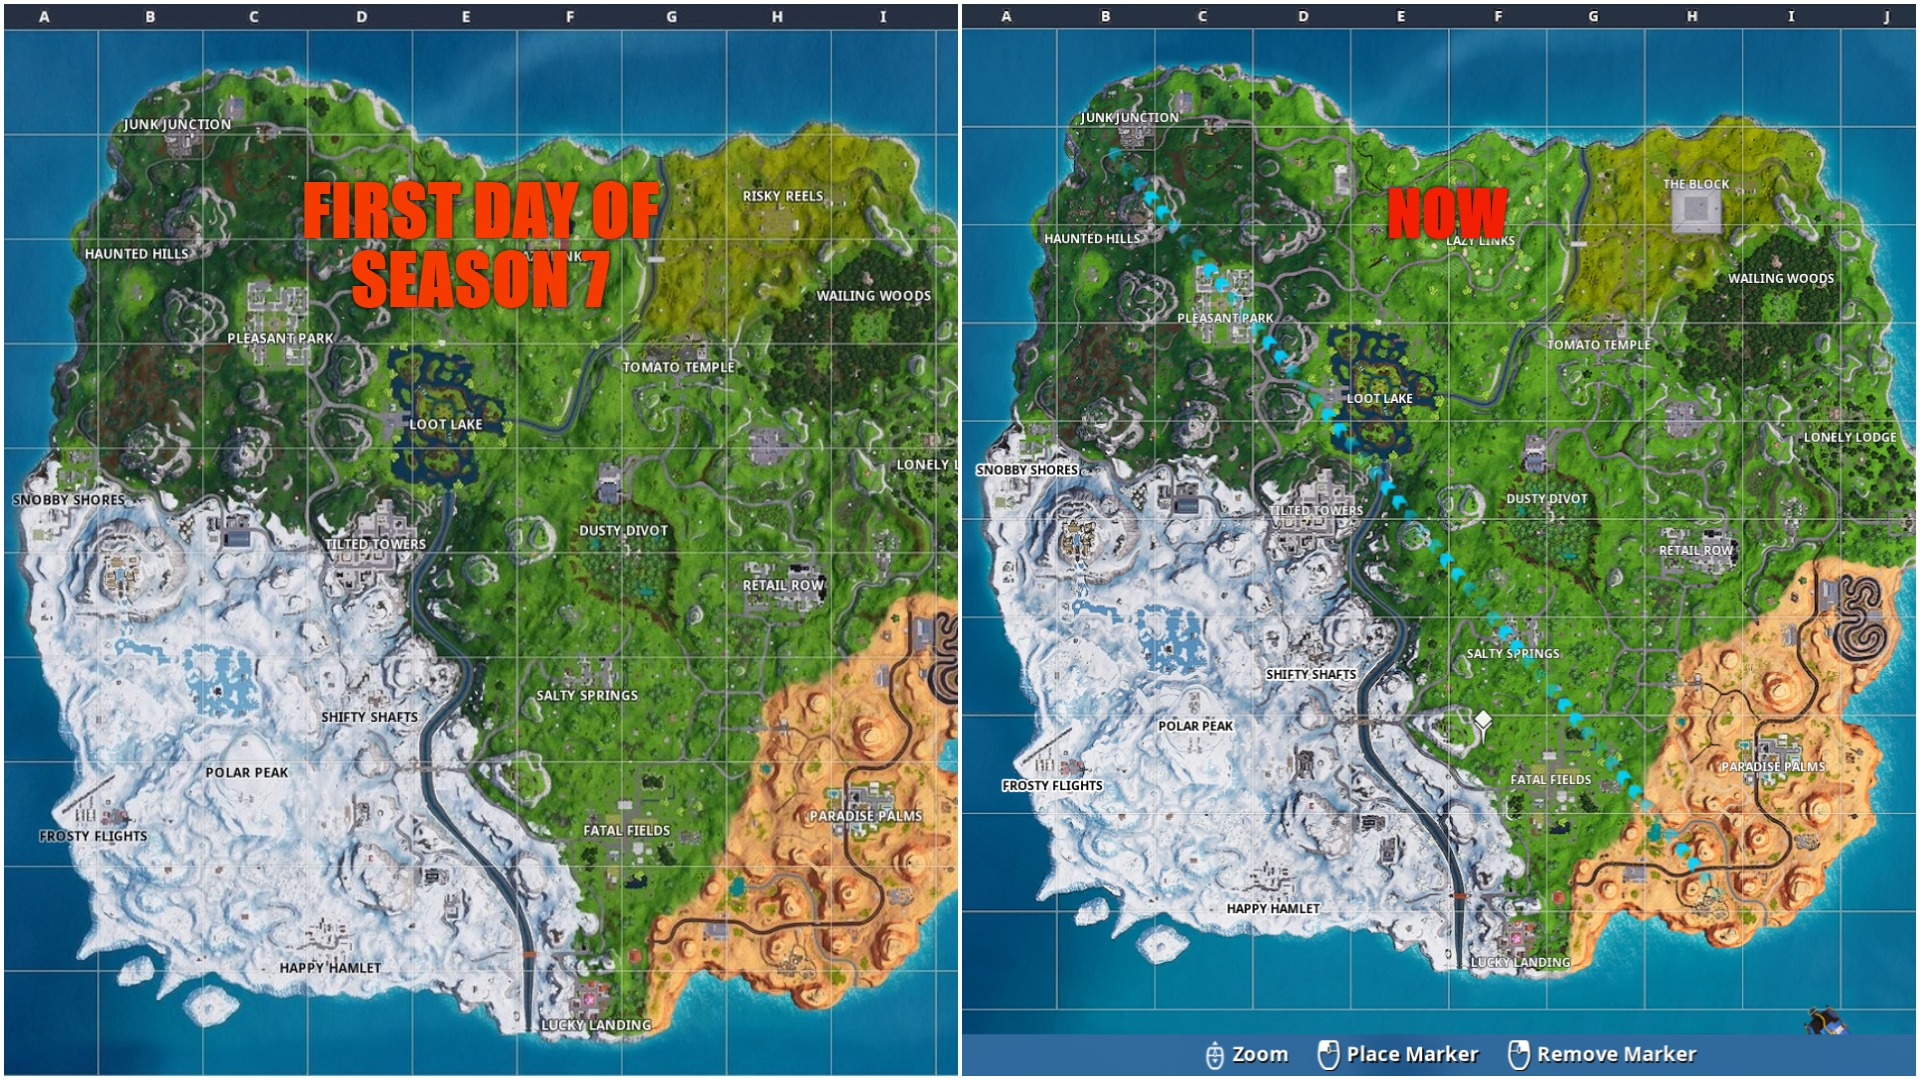 Snow Spreading Across the Map in Fortnite